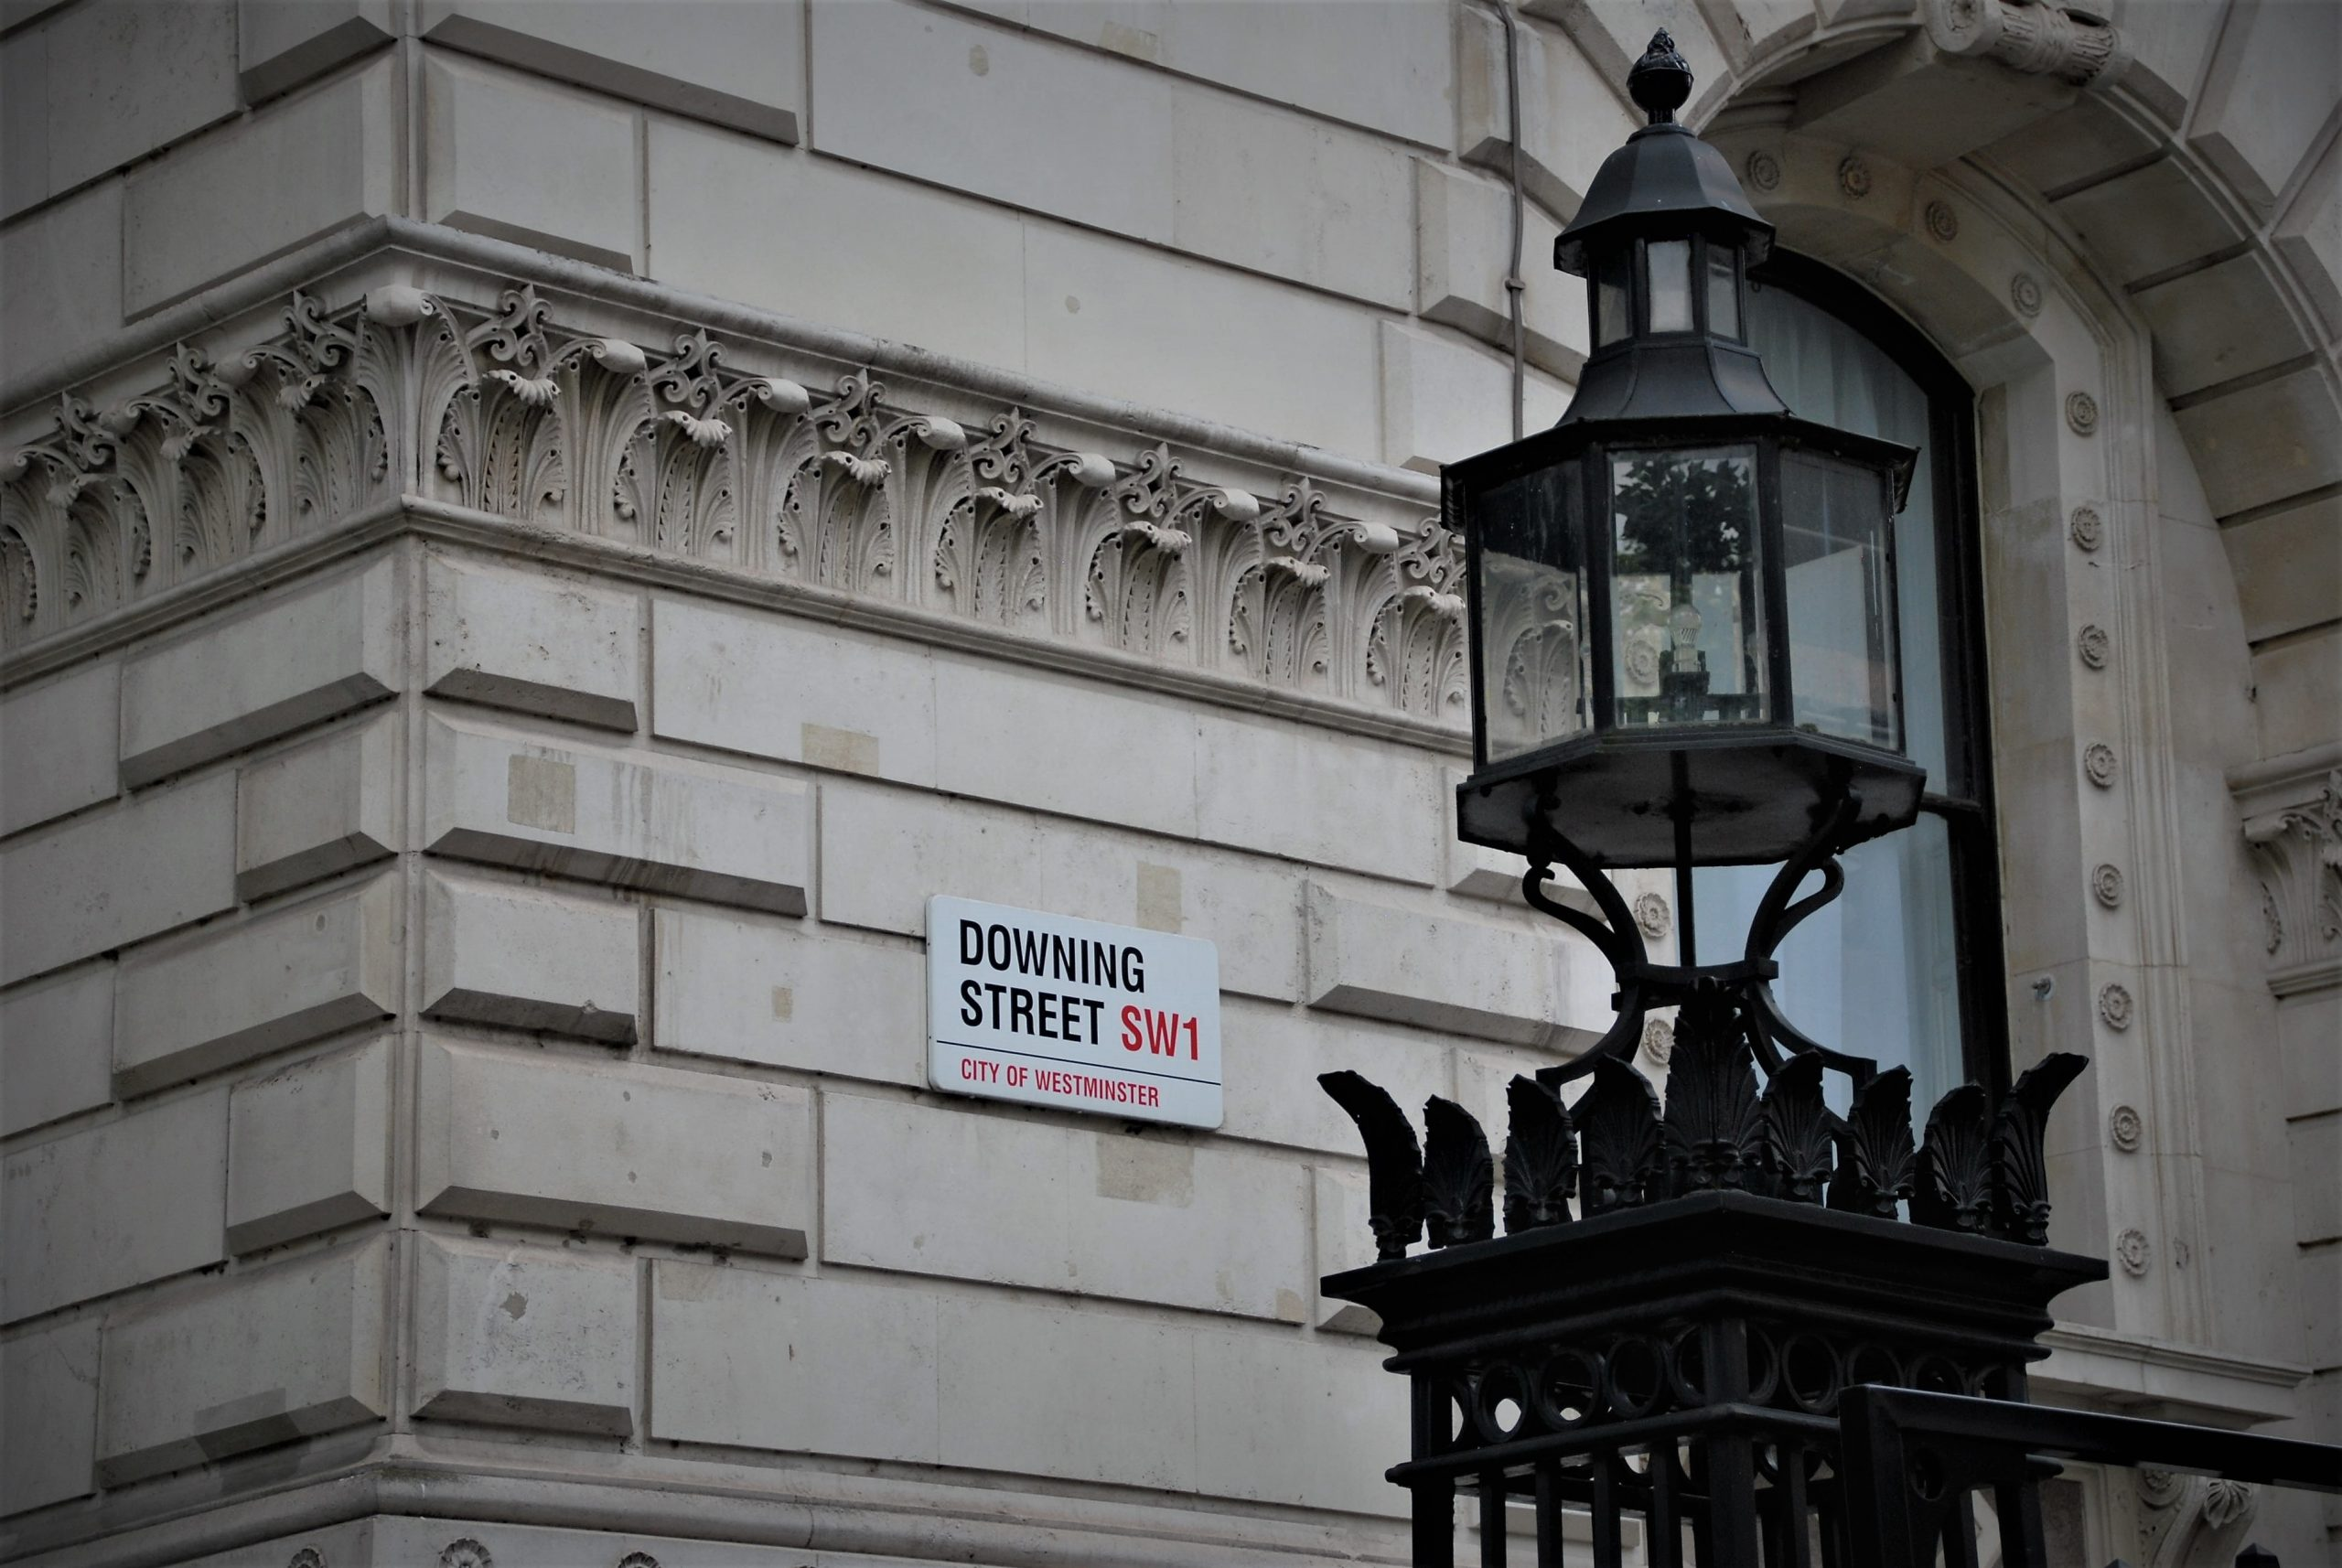 The photo shows a black street lamp in the foreground. In the background, there is a sign for Downing Street.